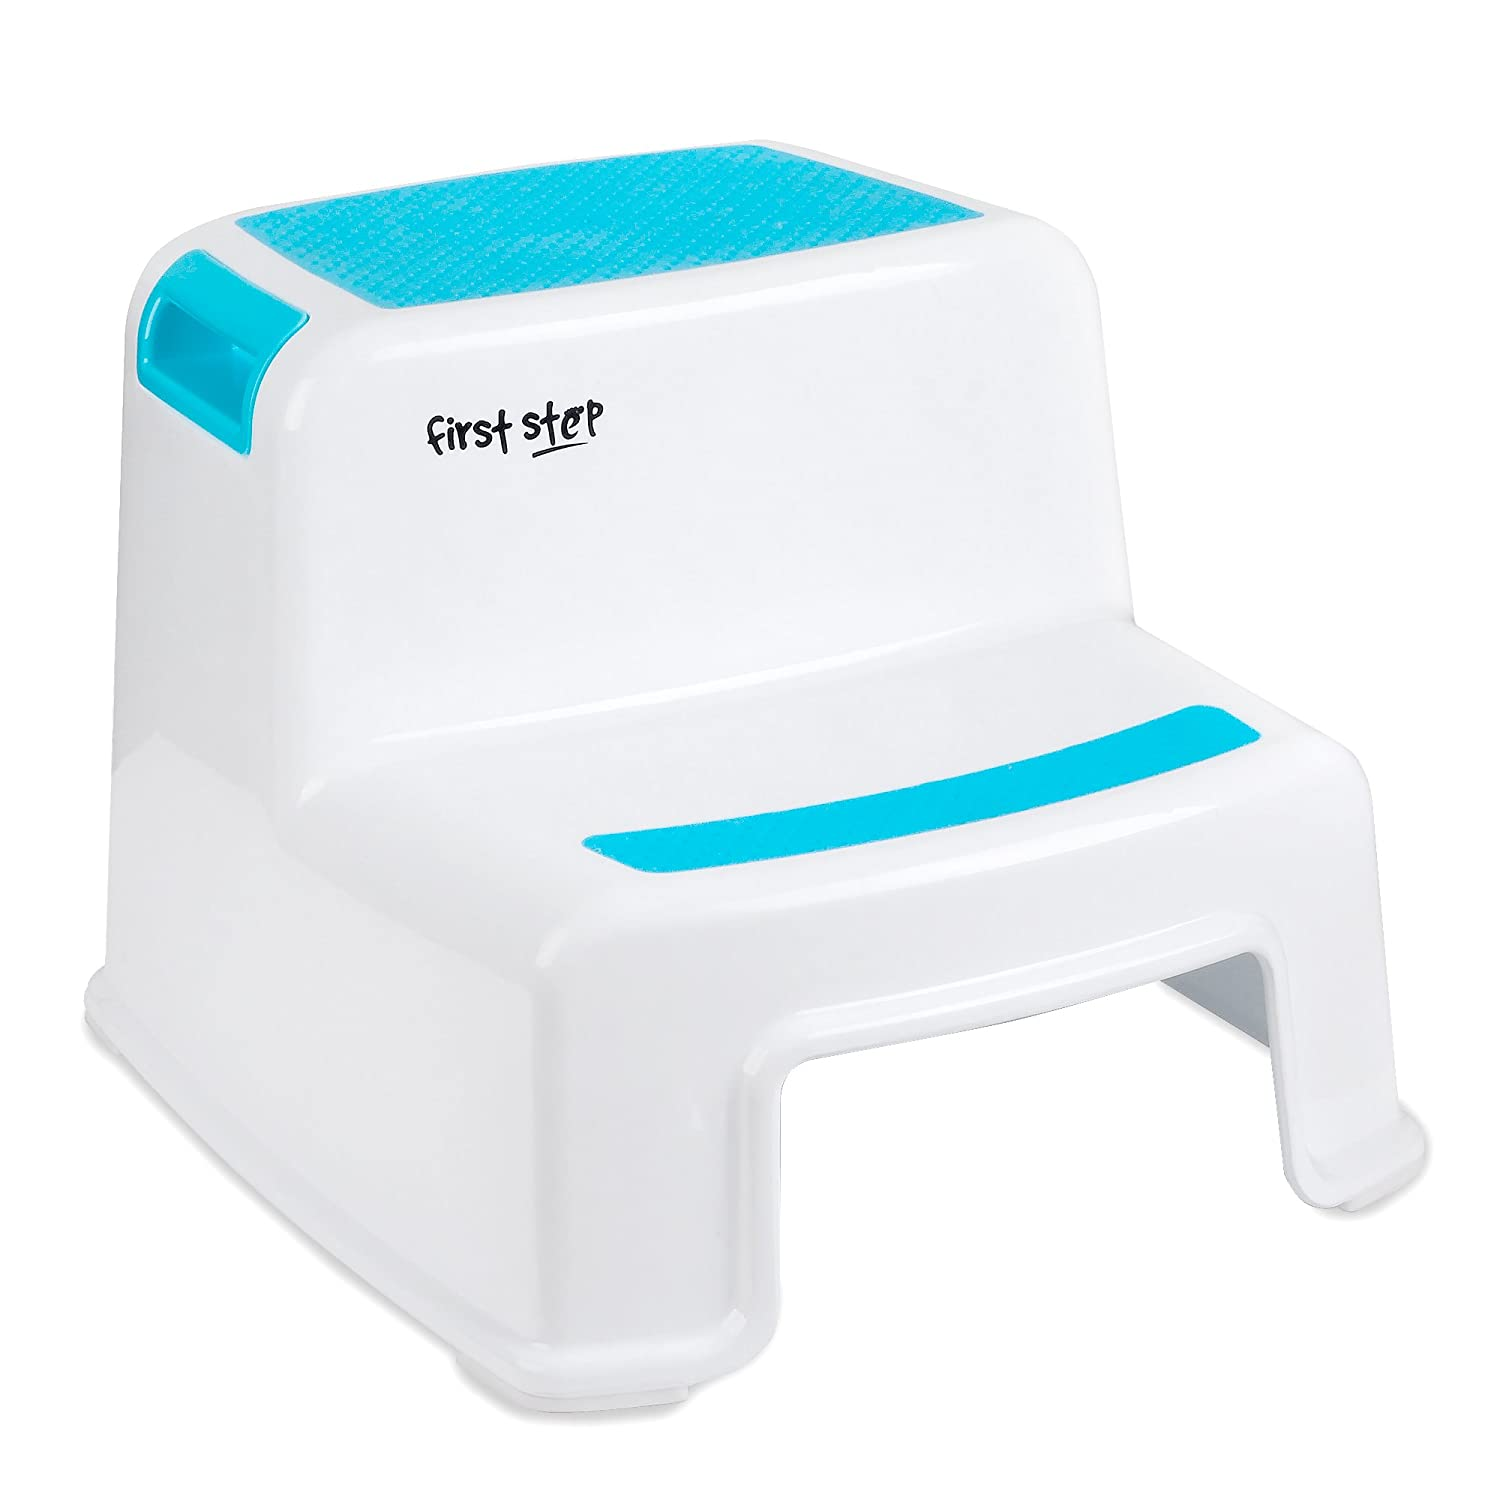 First Step Dual Height Step Stool - Non Slip Step Stool for Kids - Step Stool for Toddler's Potty Training - Portable Step Stool with Handle - Kid's Modern Stool by First Step Baby Step Up